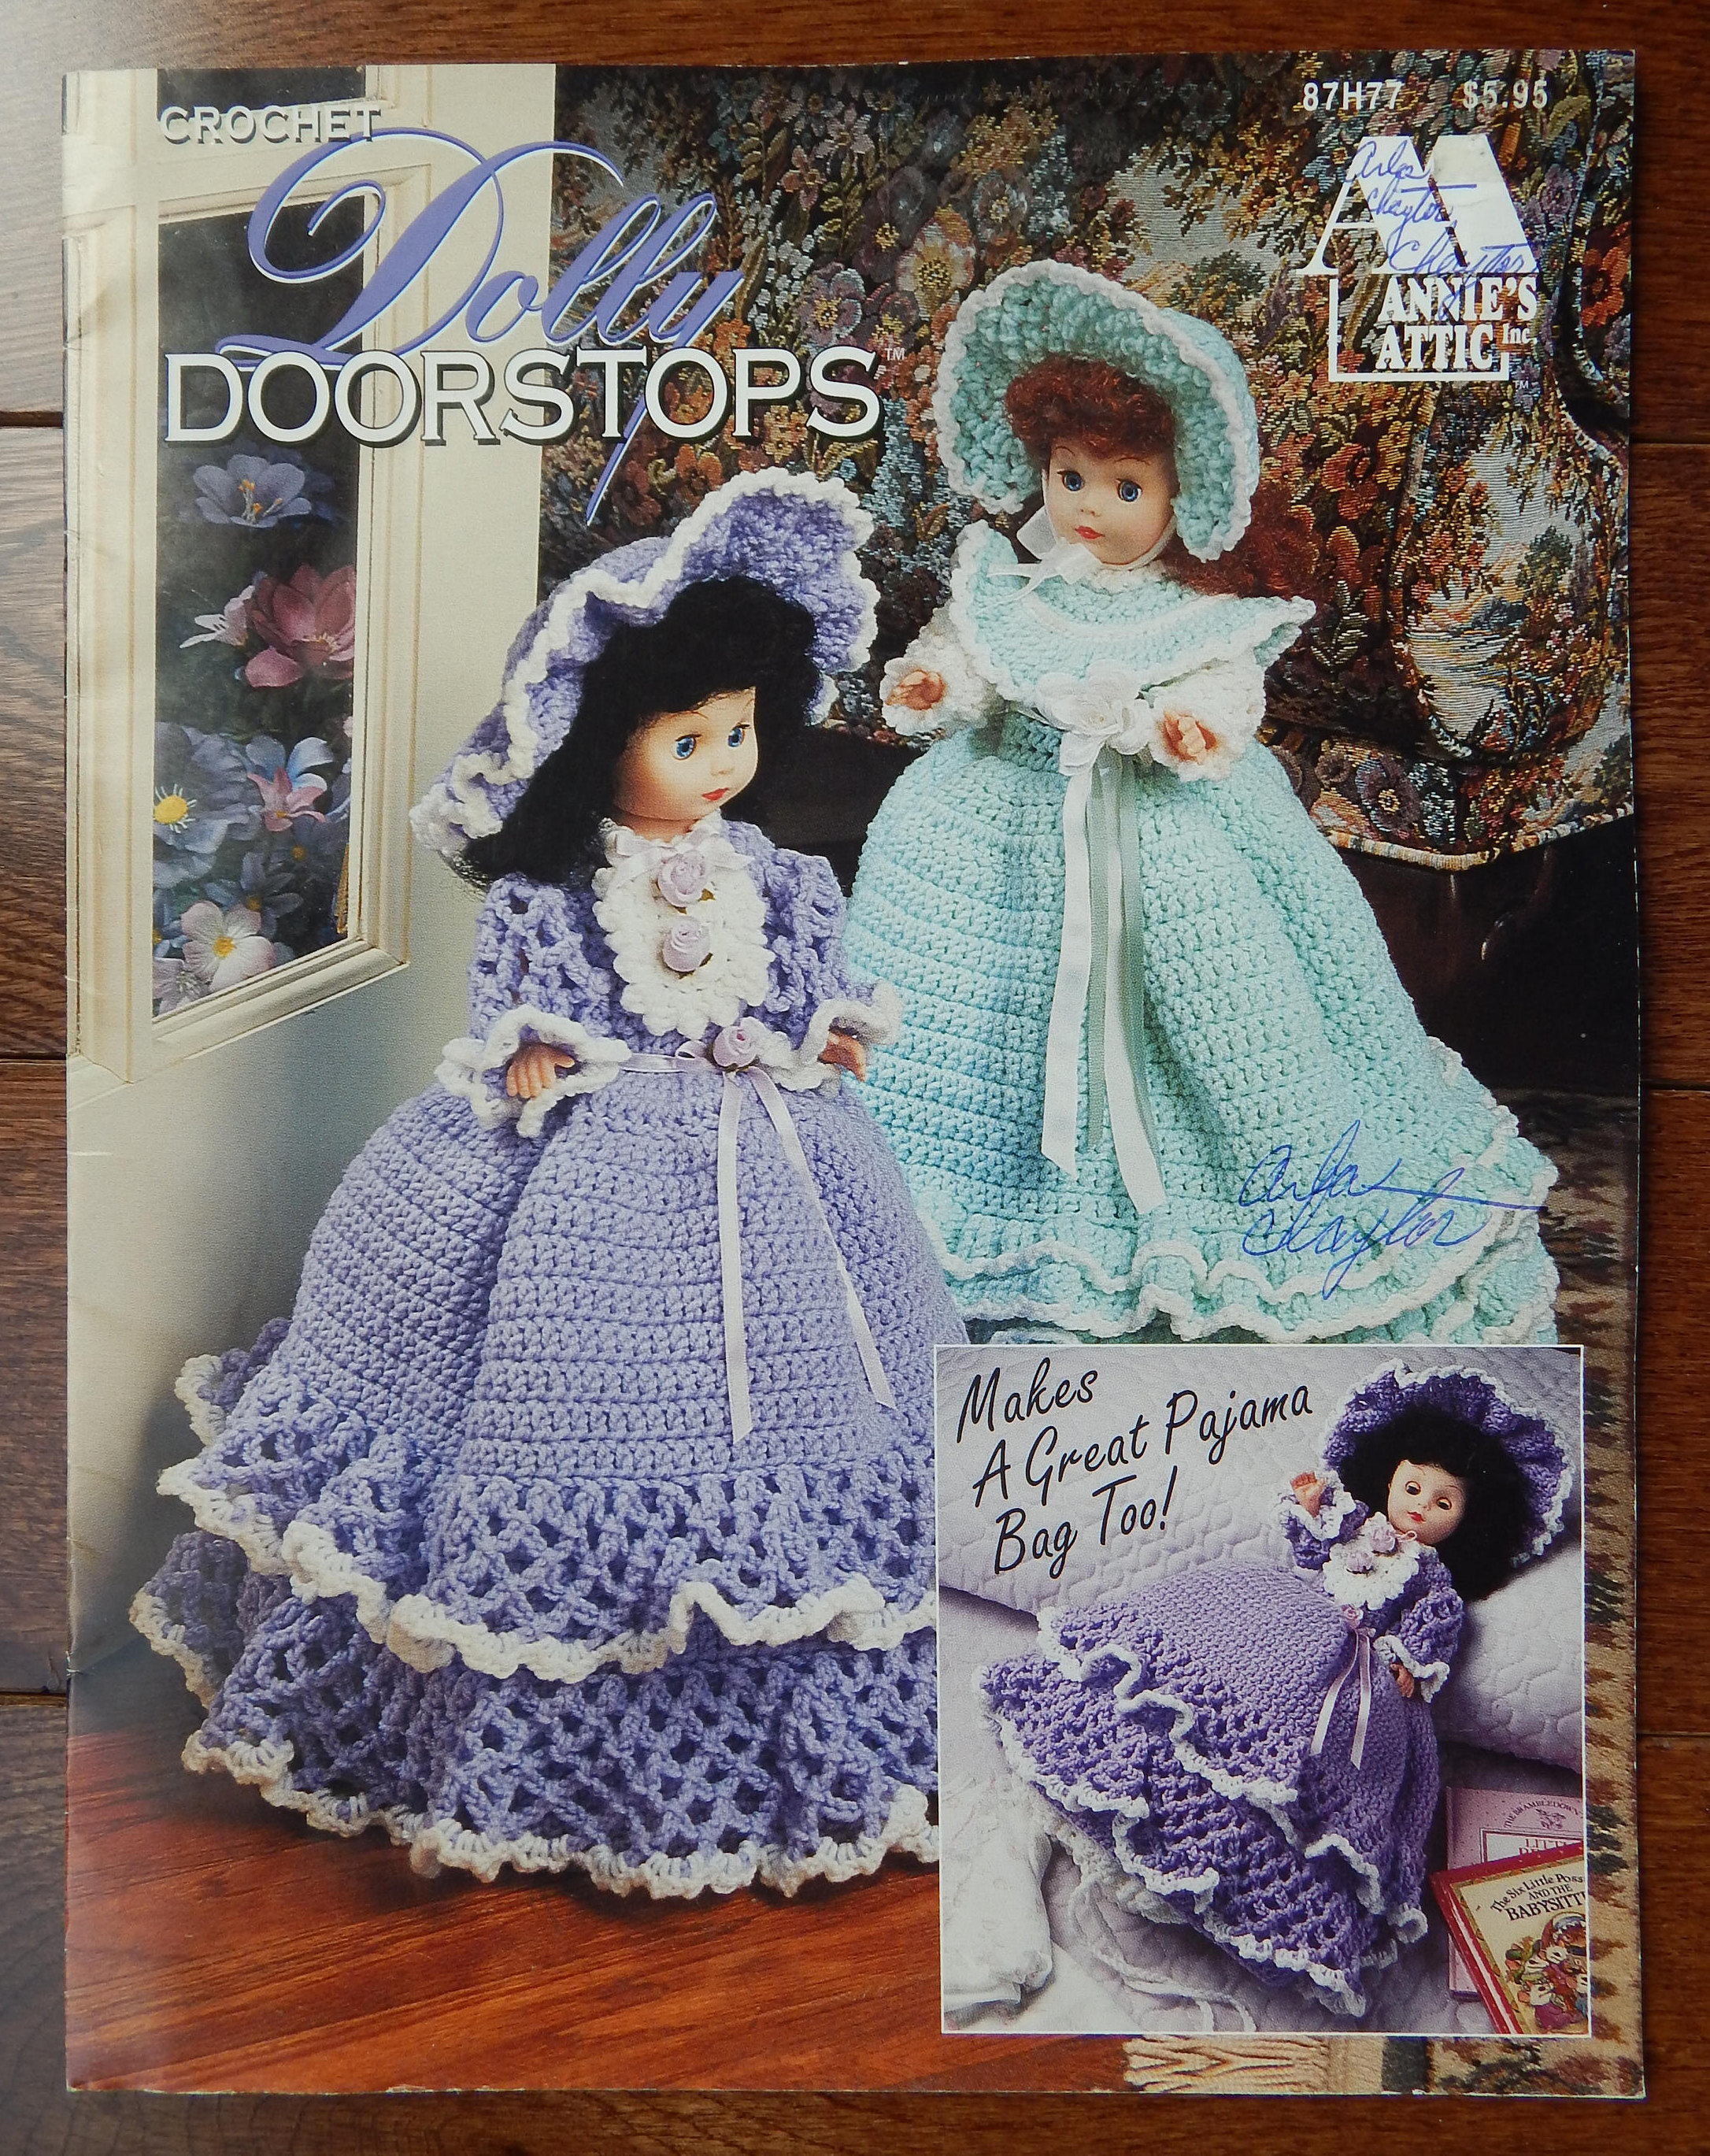 Crochet Doorstop or Pajama Bag Patterns/ Vintage Annie\'s Attic Dolly ...